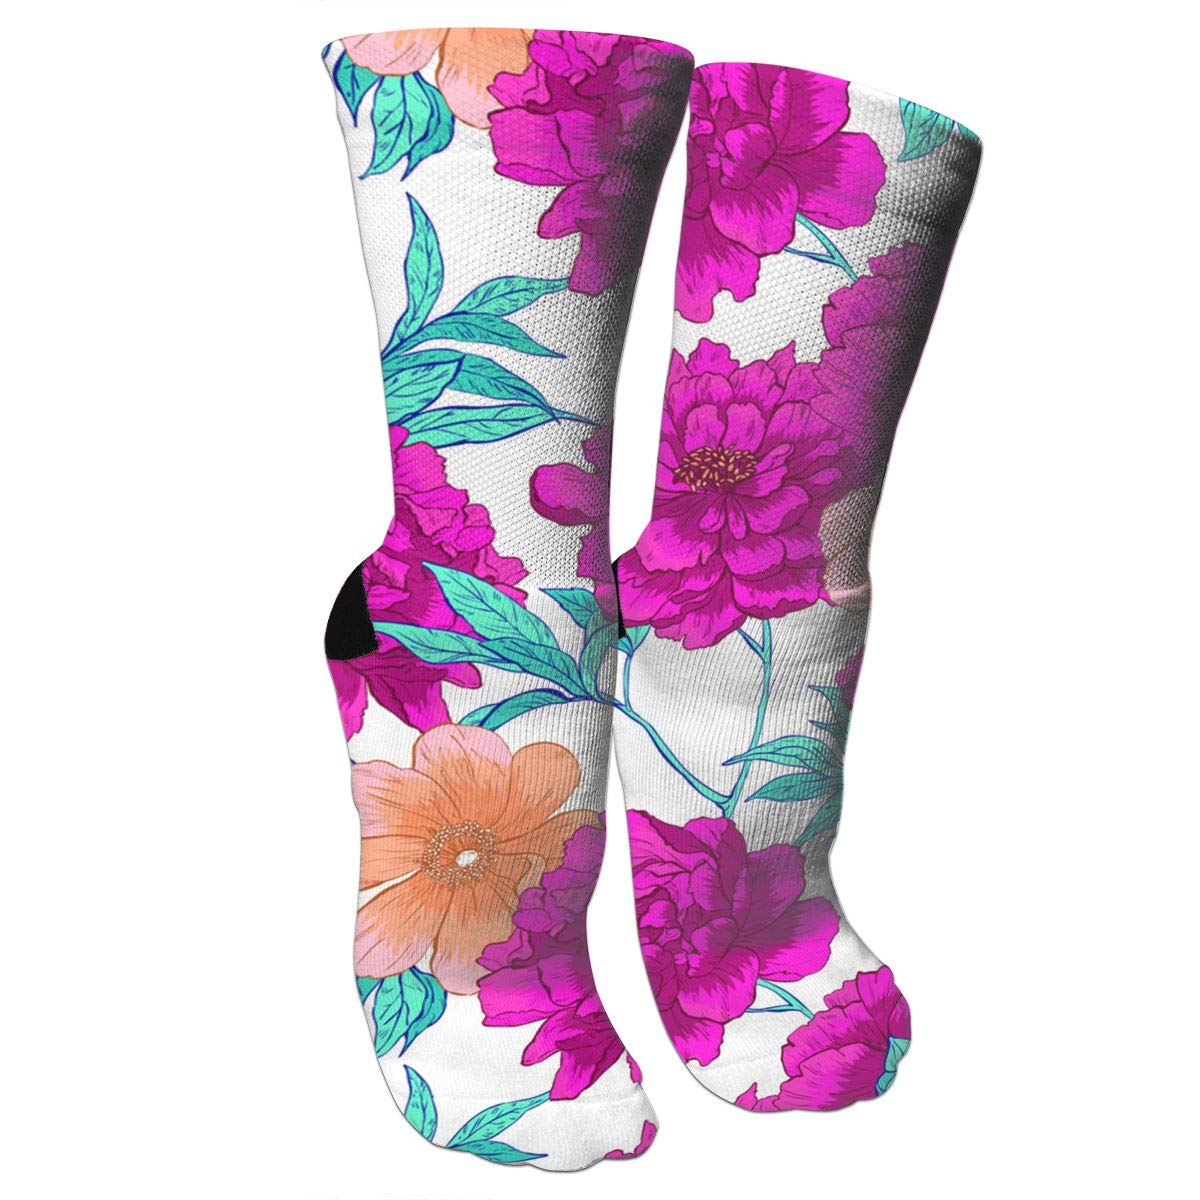 Floral Ornament Climbing Roses Crazy Socks Soft Breathable Casual Socks For Sports Athletic Running